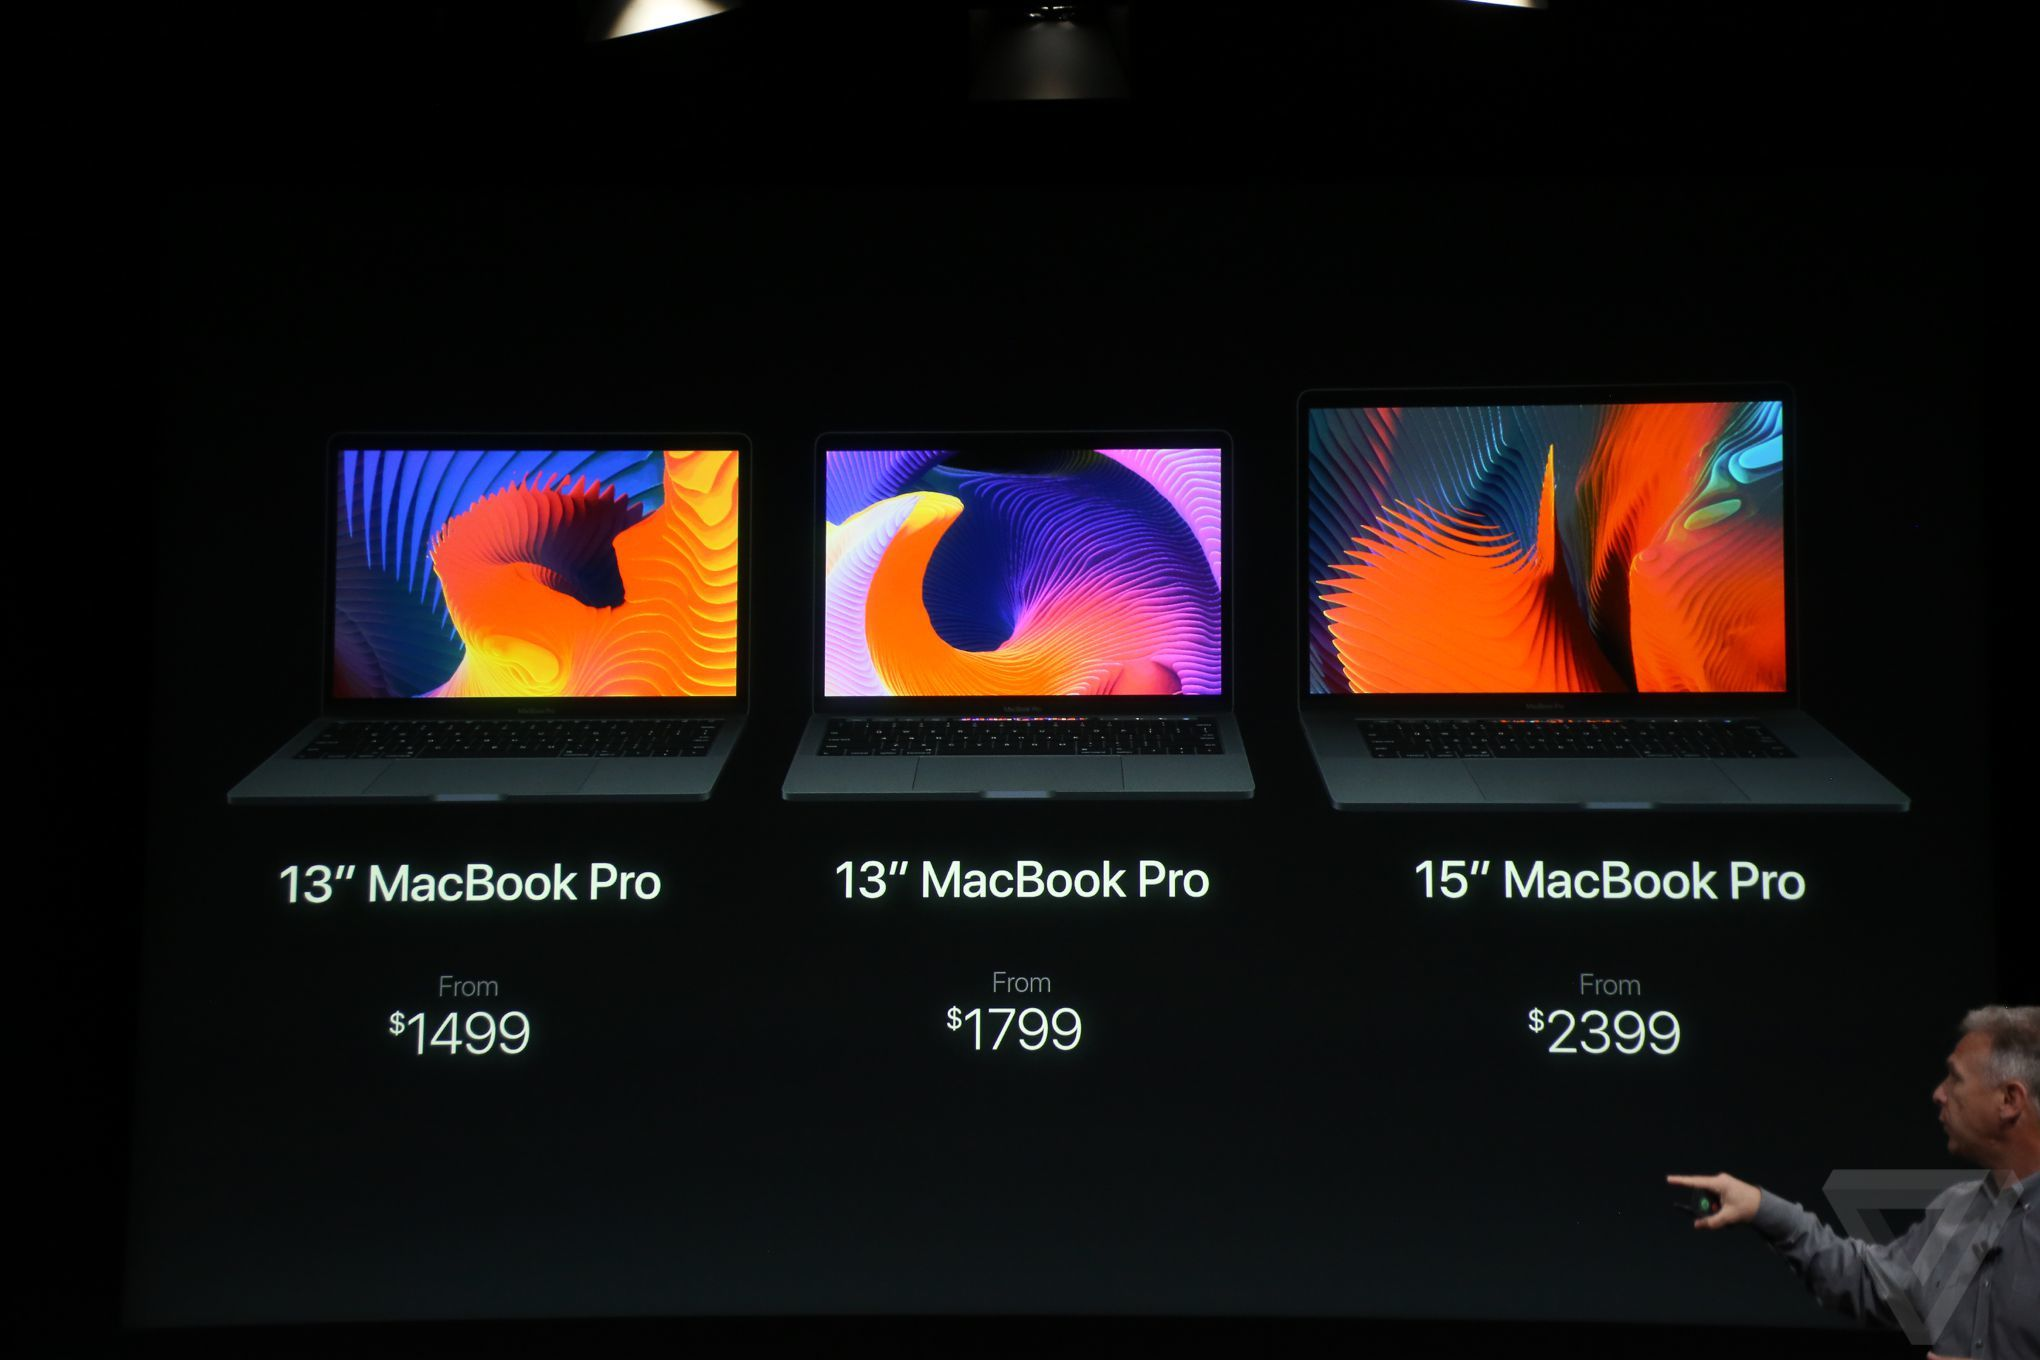 apple-macbook-event-20161027-9071